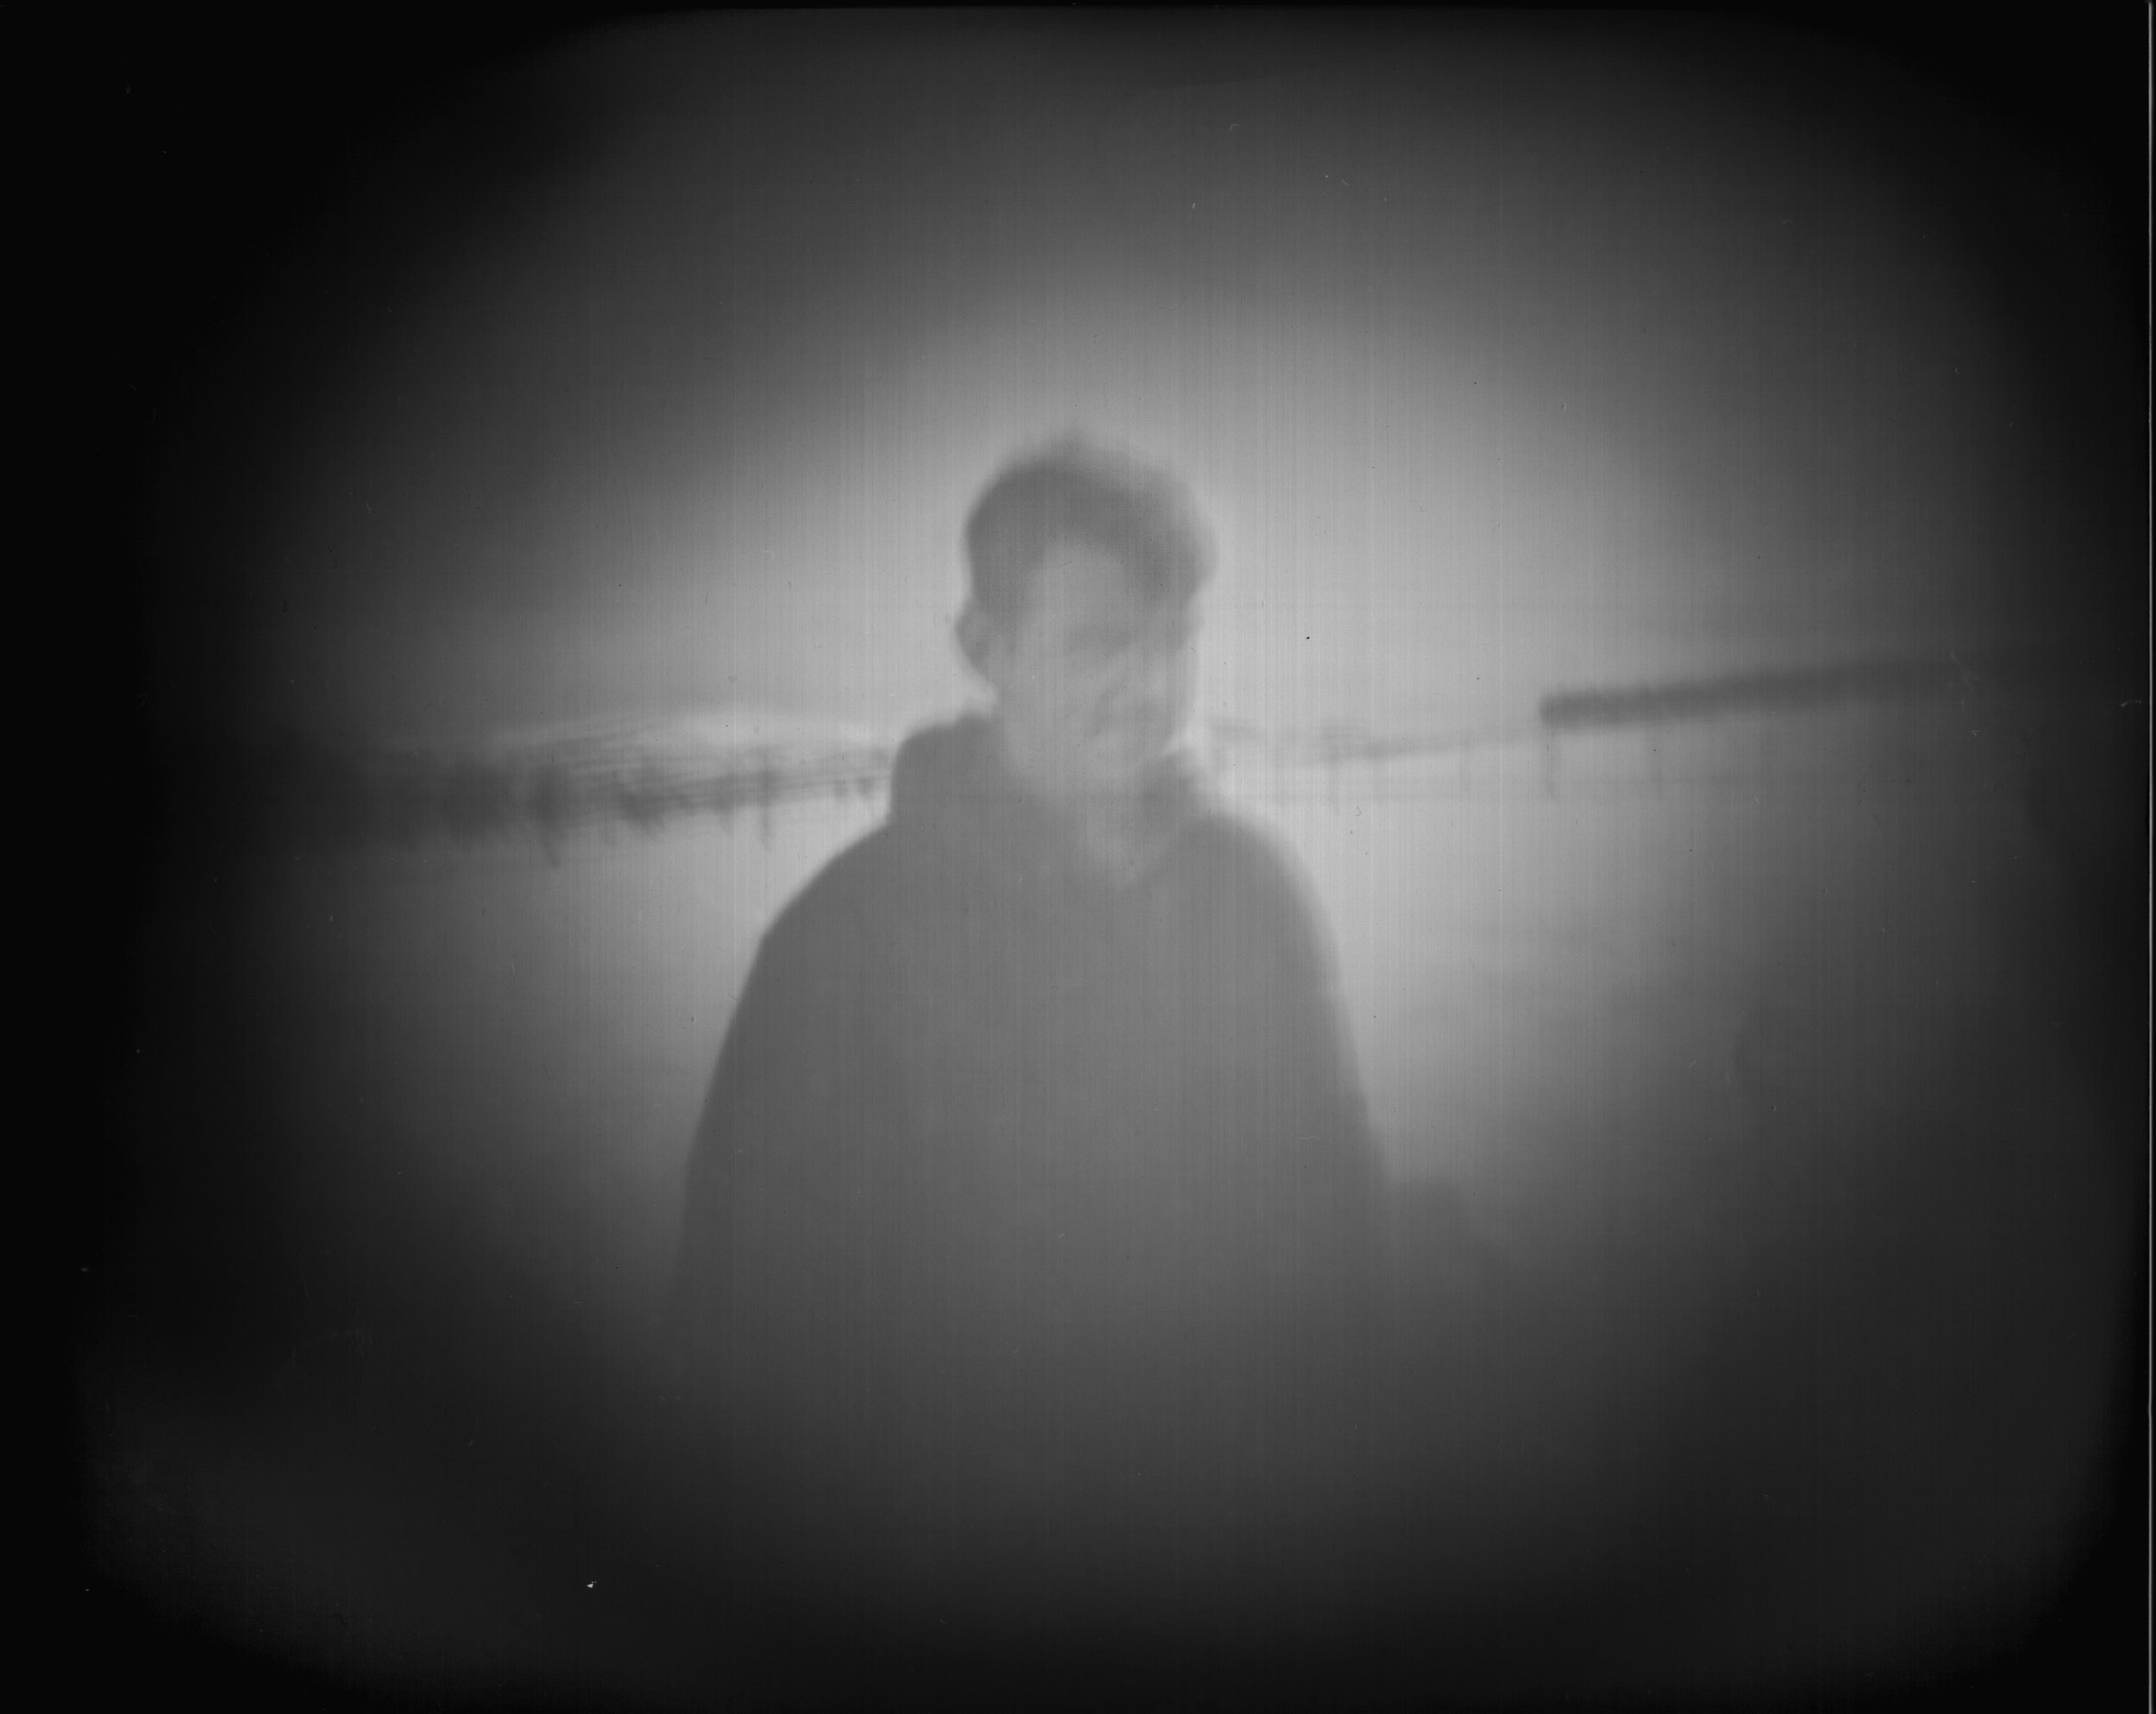 SPA 2018, Harriet Selka, Pin-hole portrait during the Beast from the East, Digital print from pin-hole negative, 30x35, £300  All rights reserved